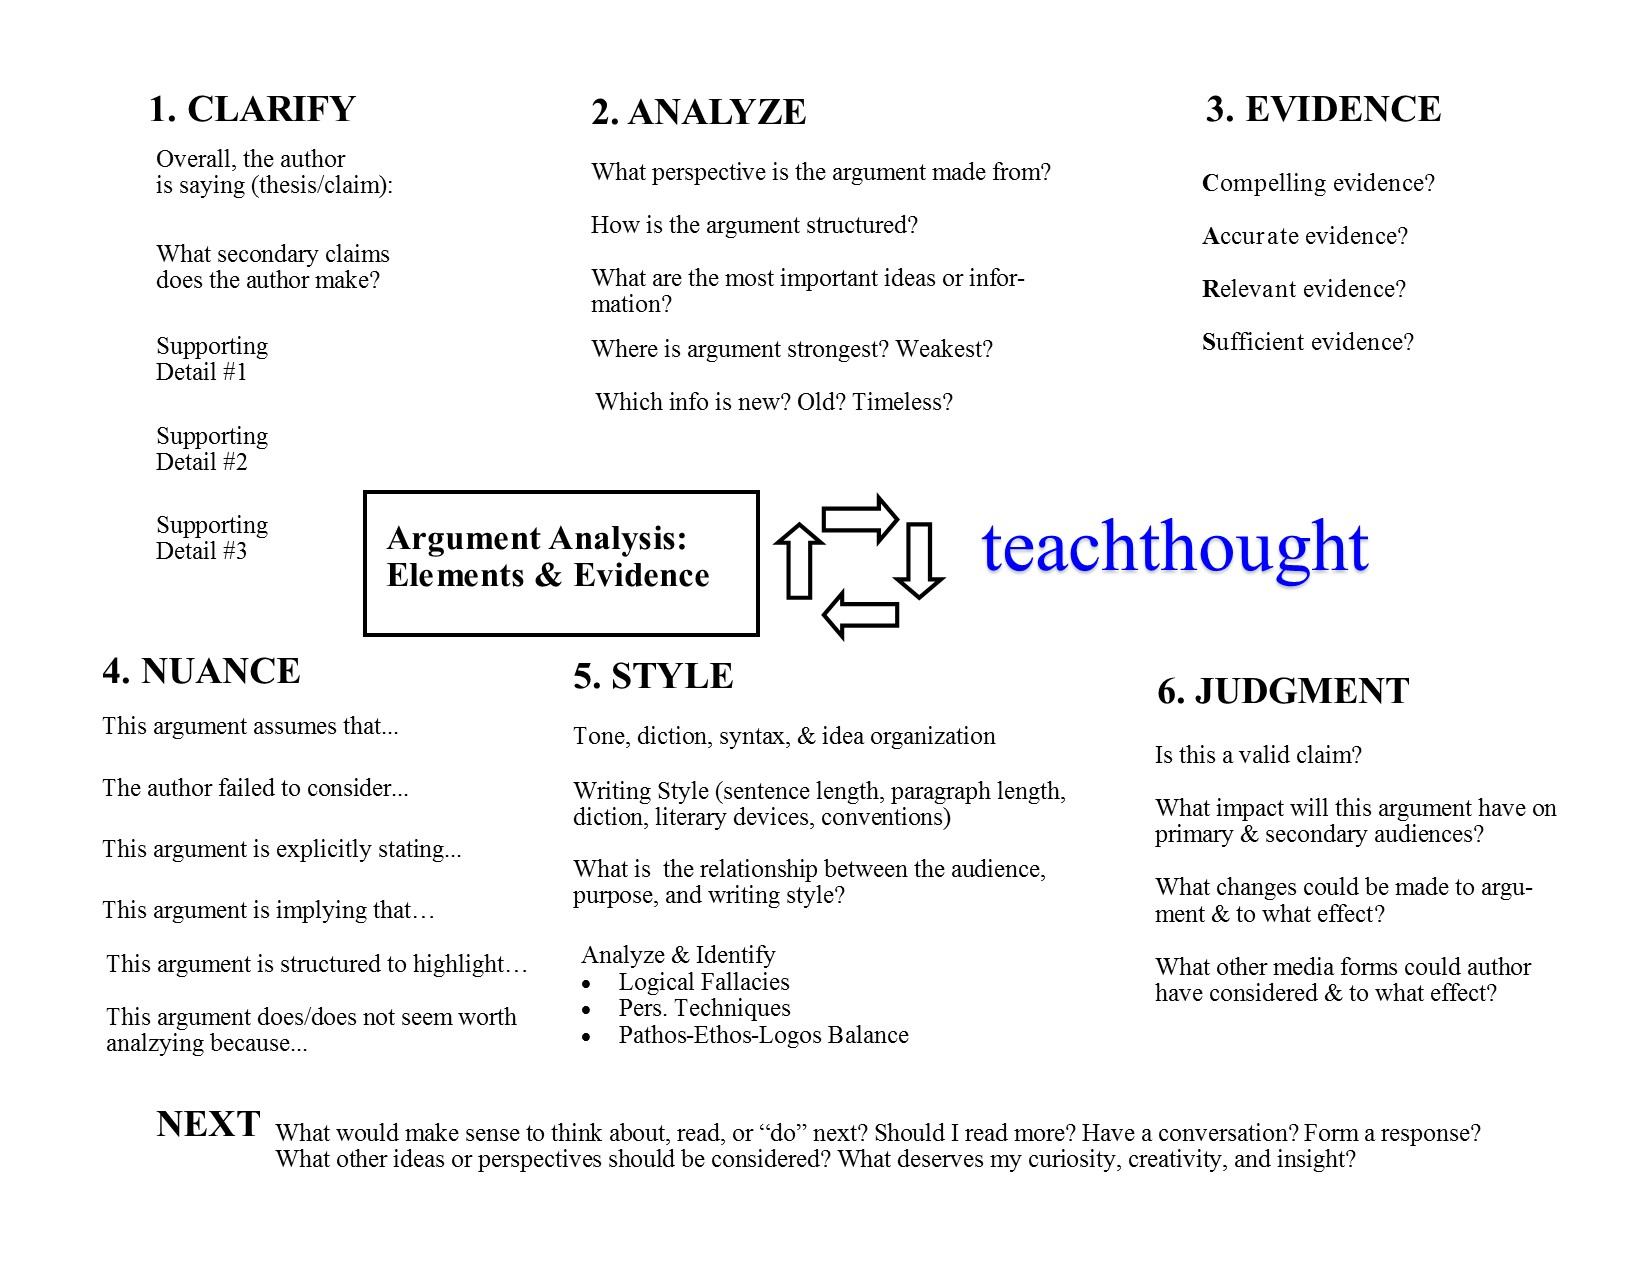 a step process for teaching argument analysis